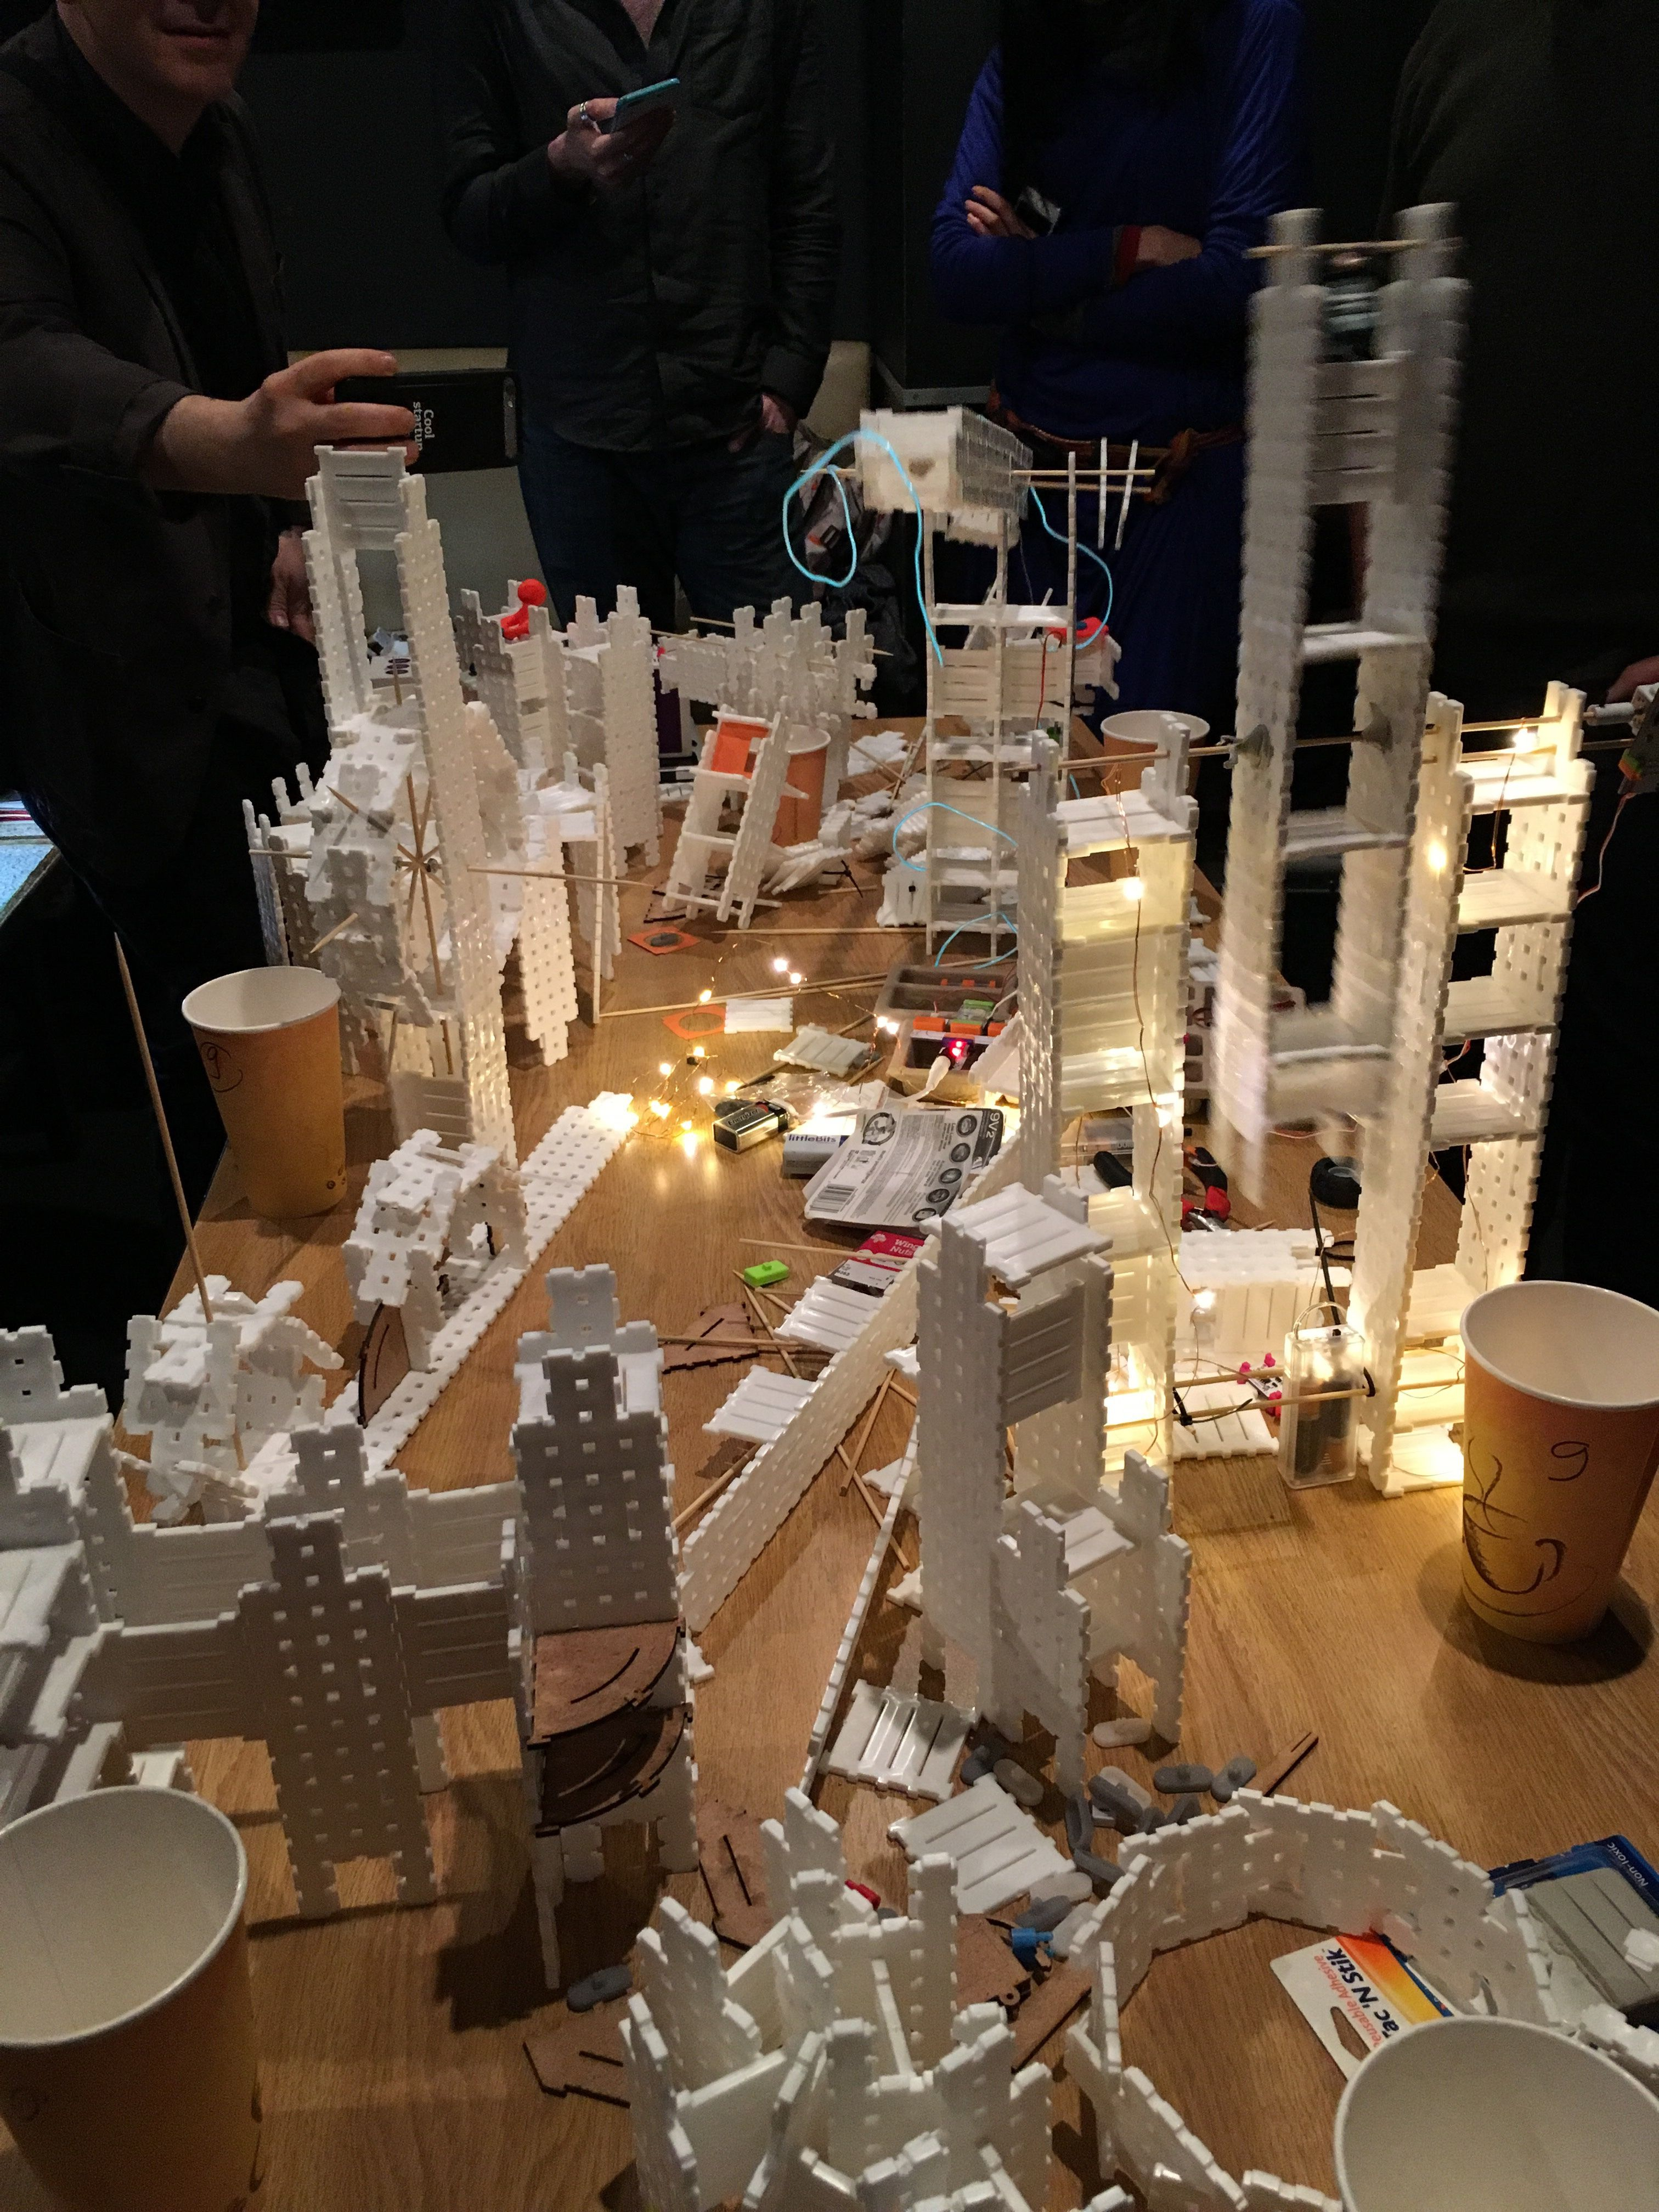 FabFoundry - Community for Makers in NYC